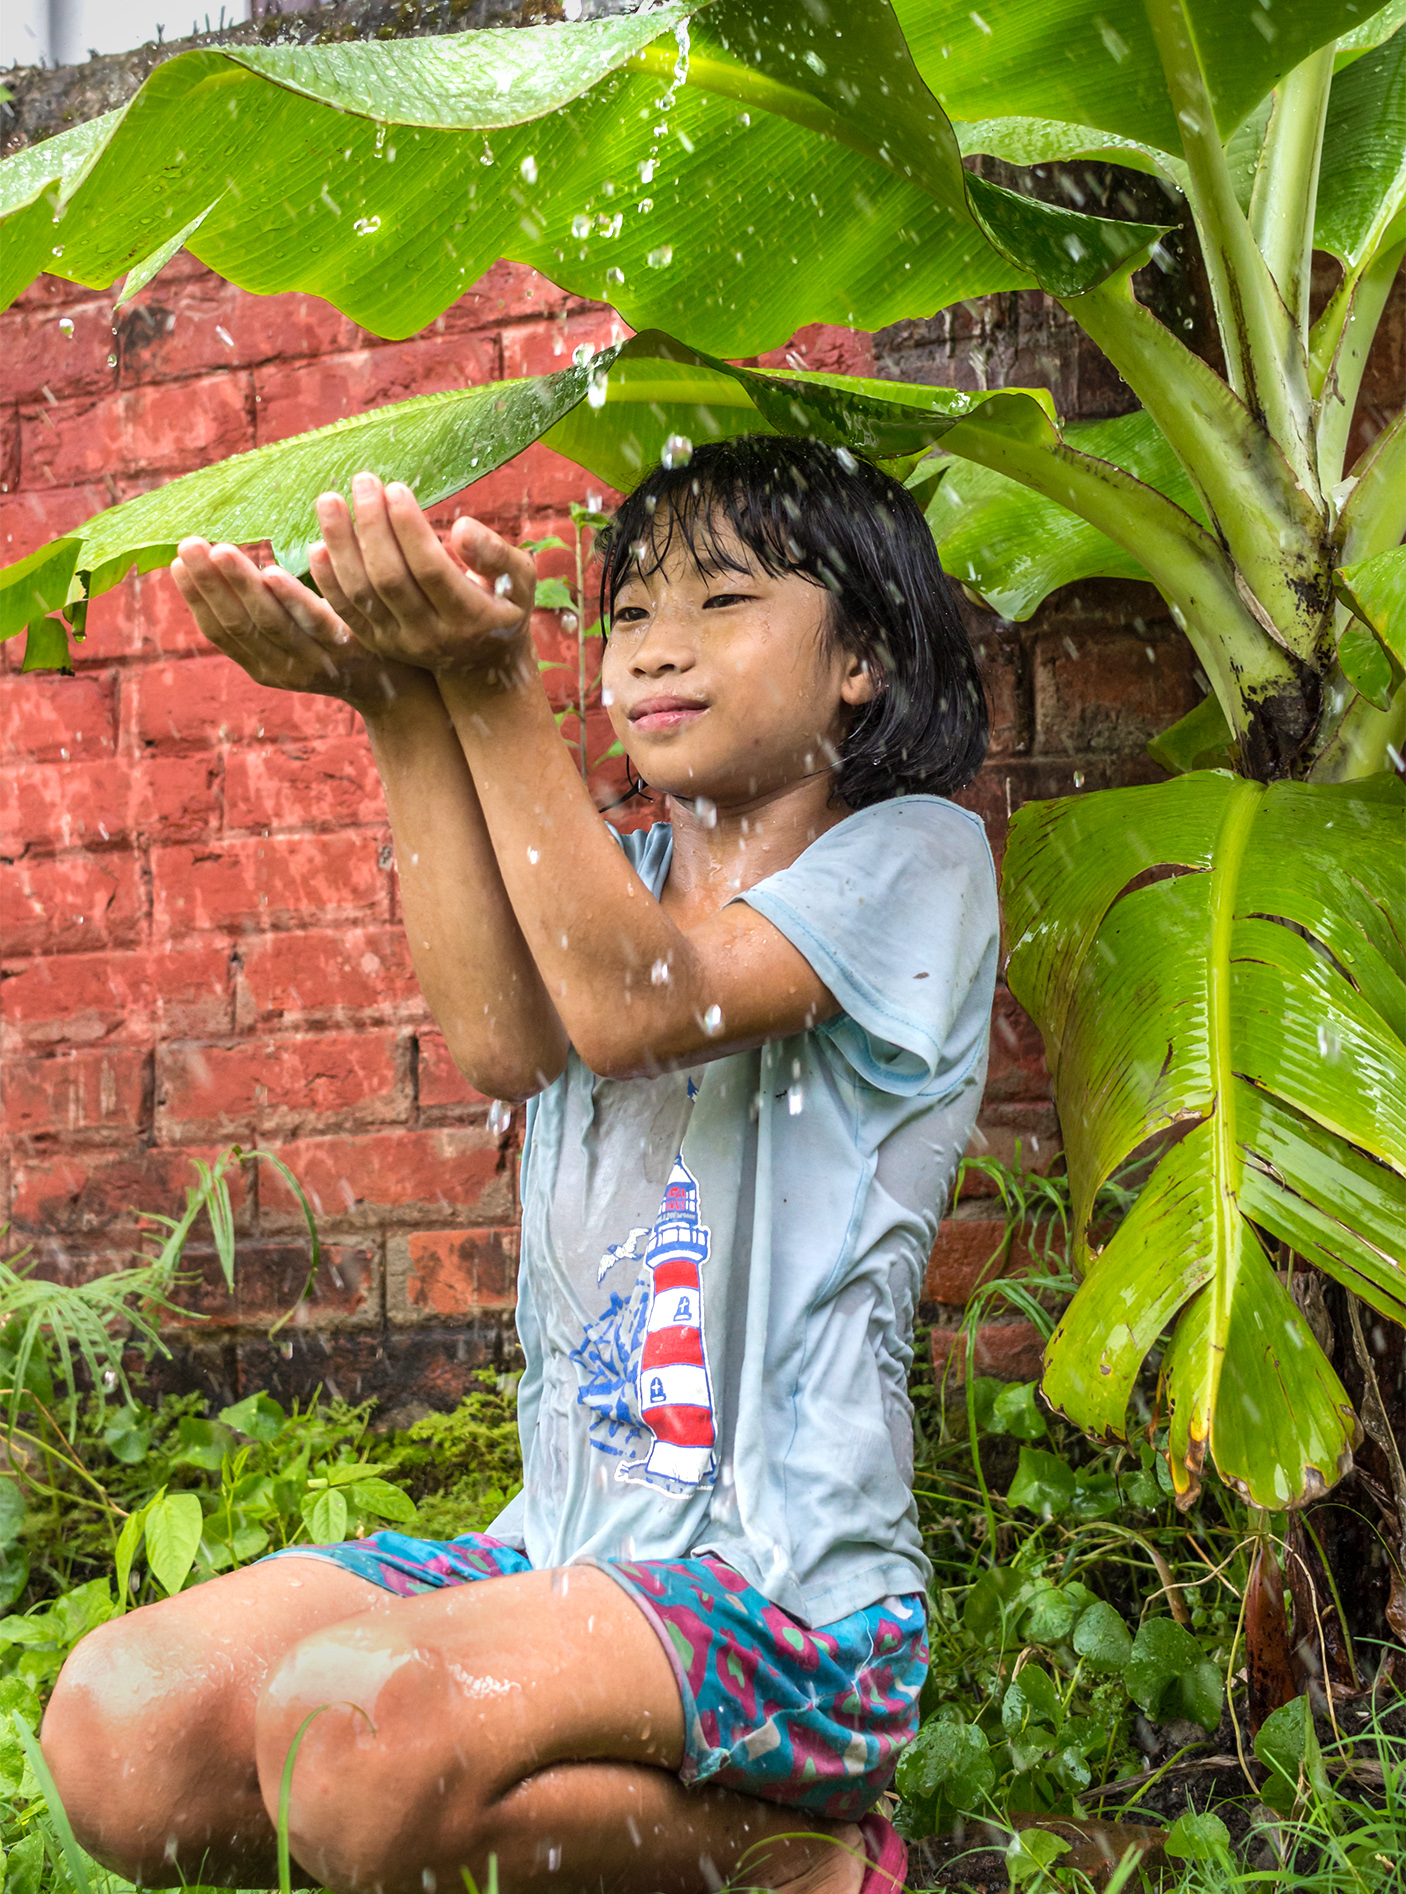 Monsoon bringing its first drops of rain brings out the childhood in all.